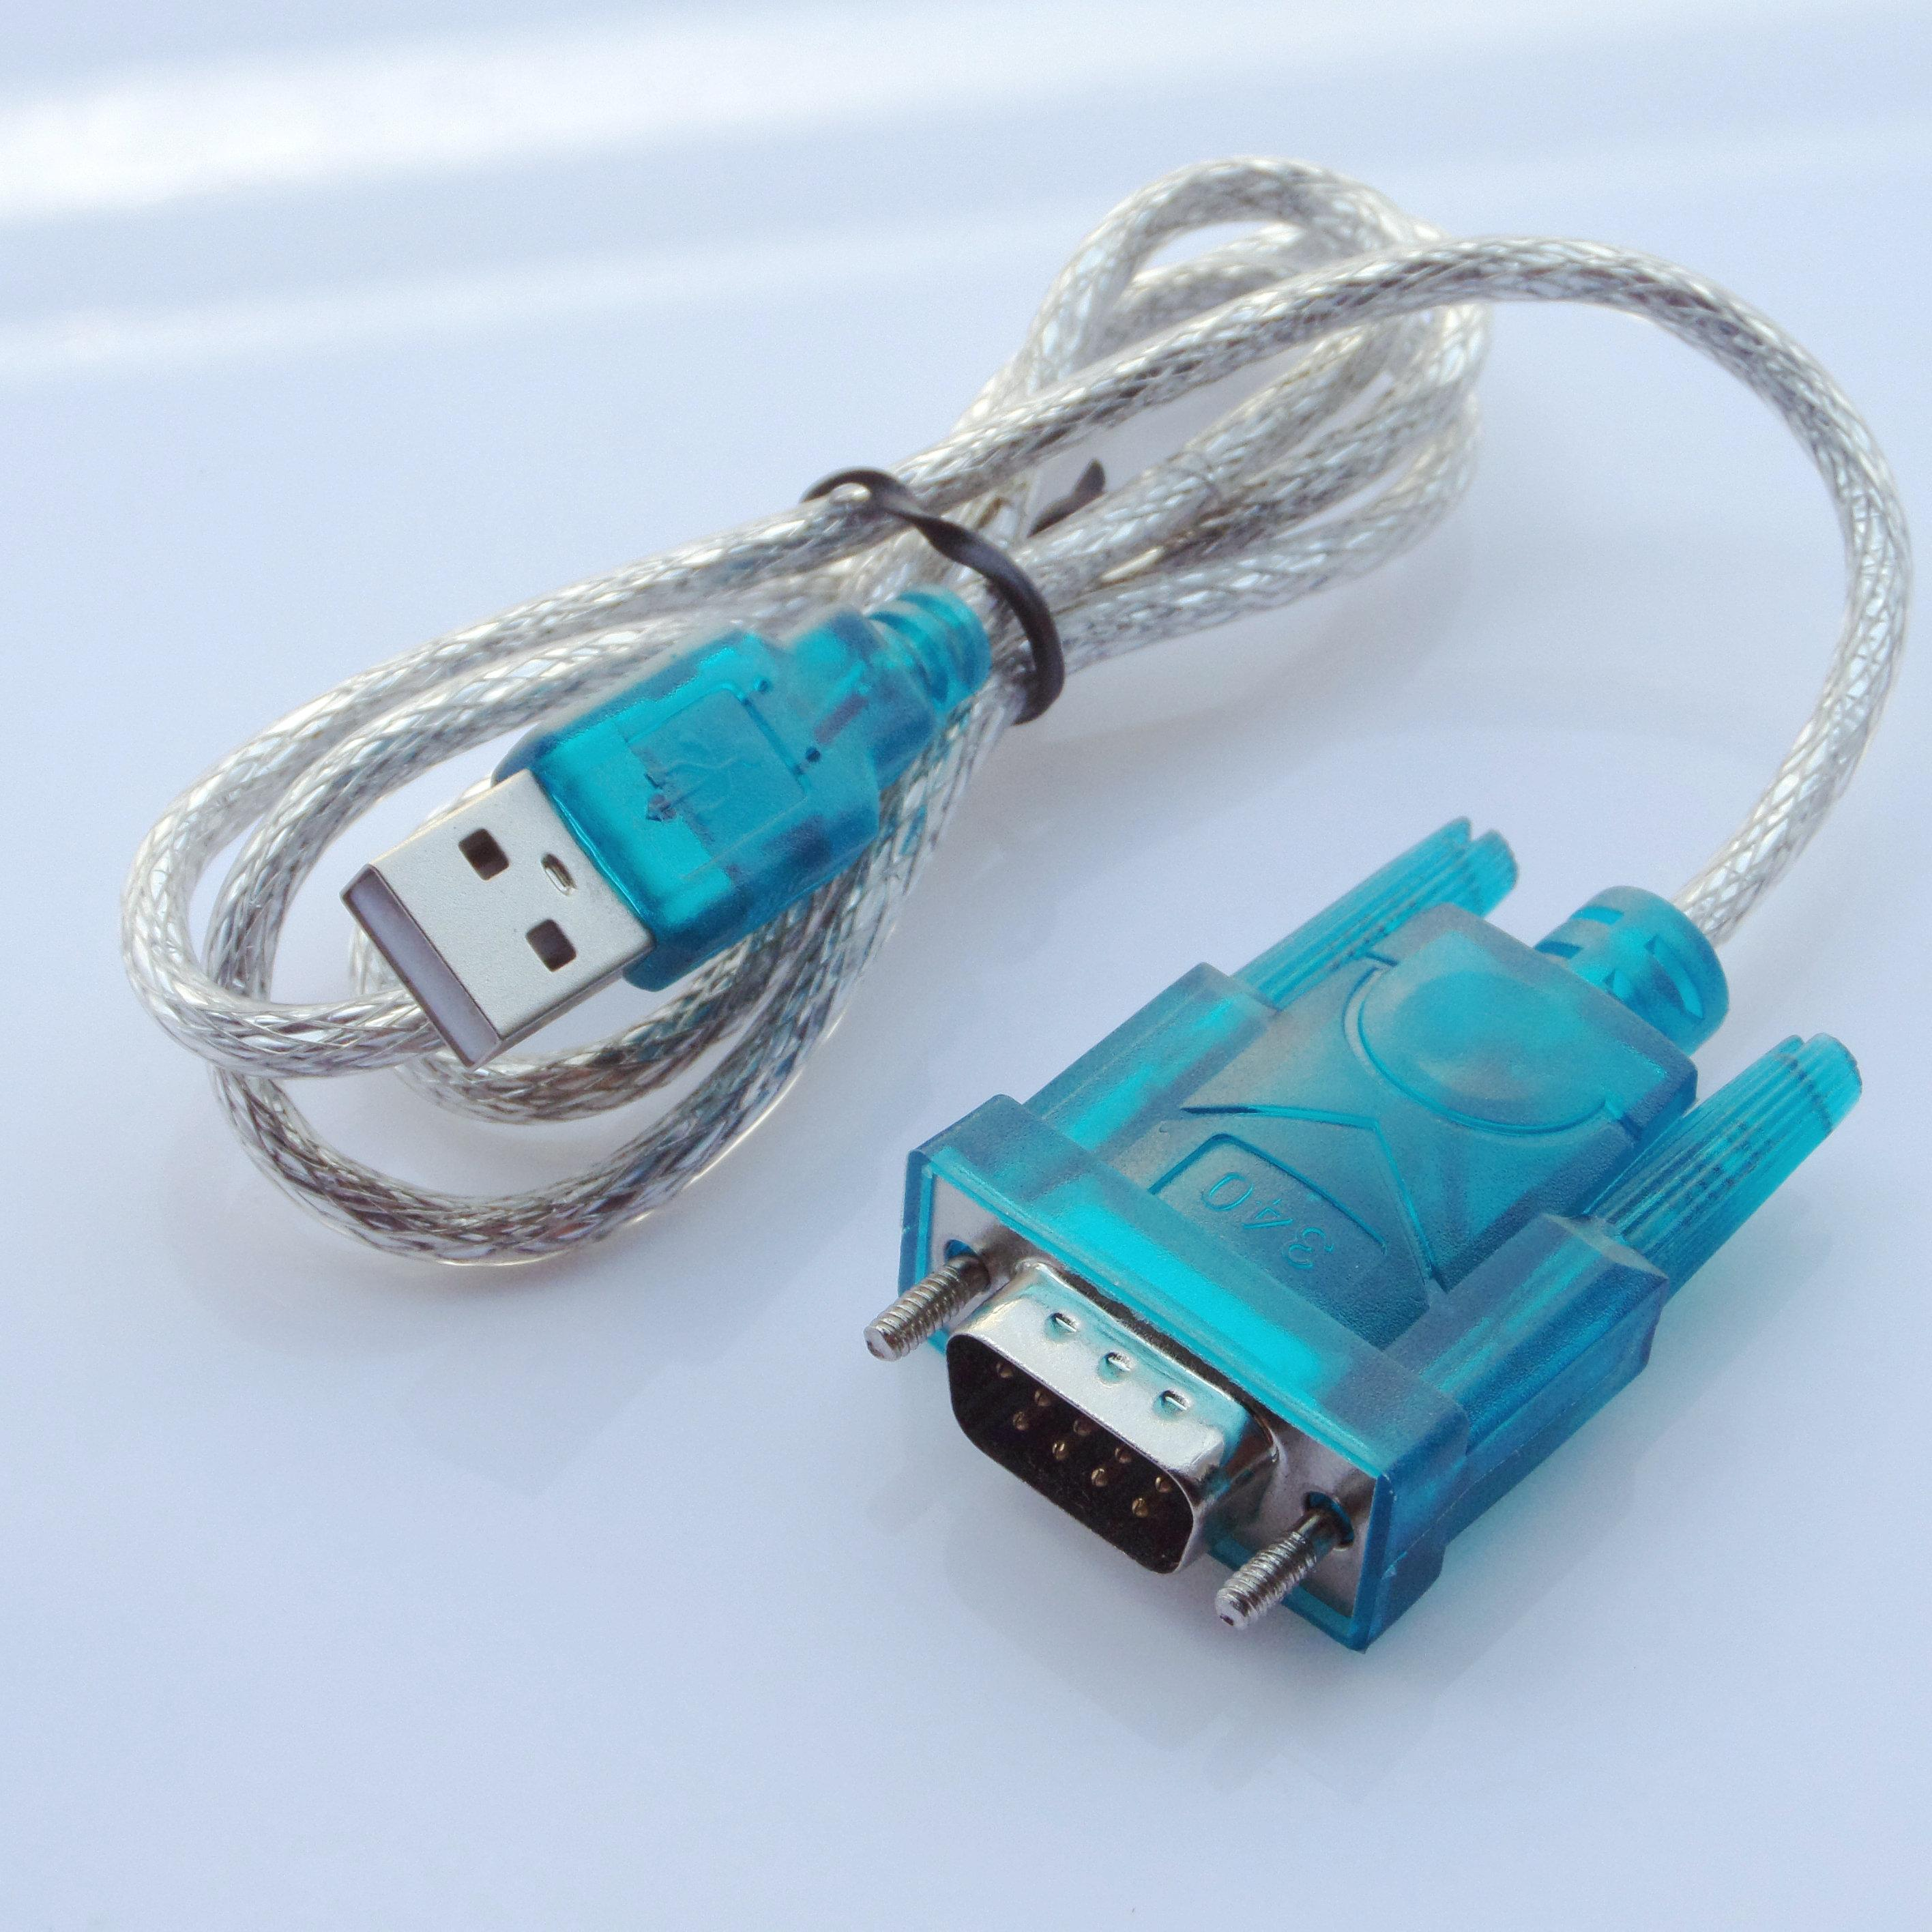 S5q usb 20 to rs232 serial db9 9 pin male adapter extension cable s5q usb 20 to rs232 serial db9 9 pin male adapter extension cable for pc laptop connectors free shipping publicscrutiny Image collections